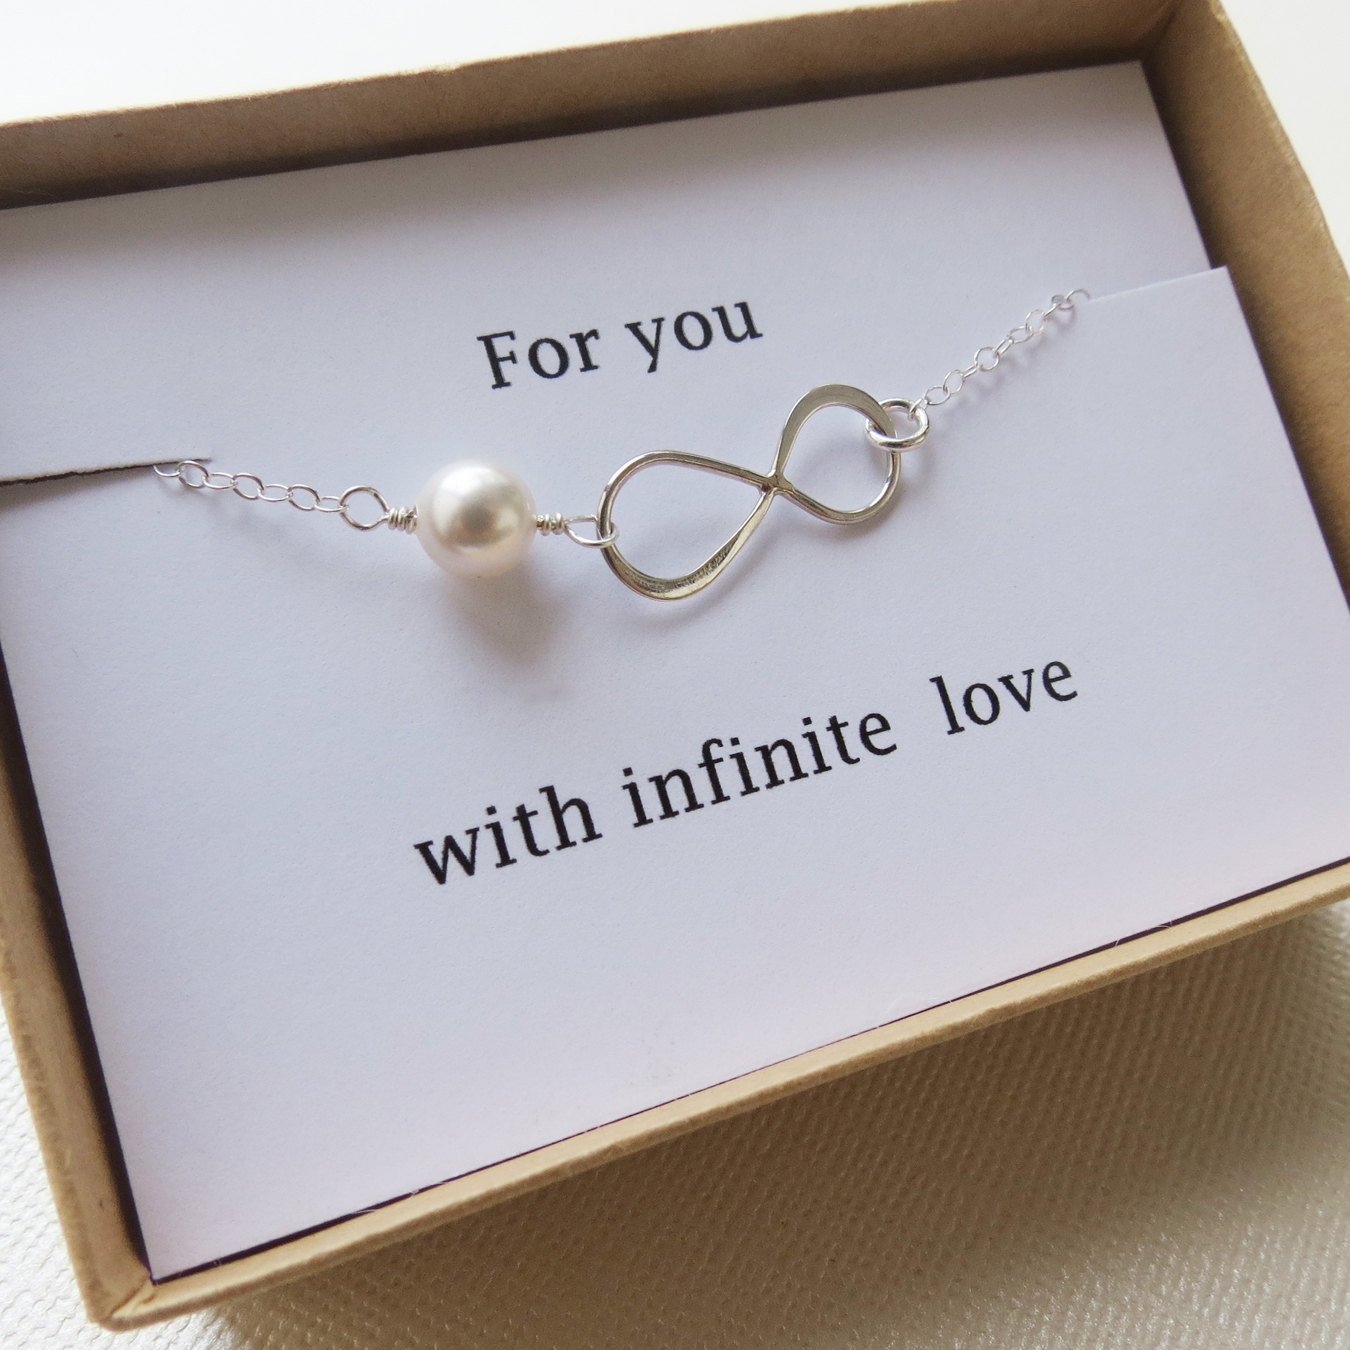 Best ideas about Gift Ideas For Your Girlfriend . Save or Pin Top 10 Gifts Your Girlfriend Actually Wants Now.